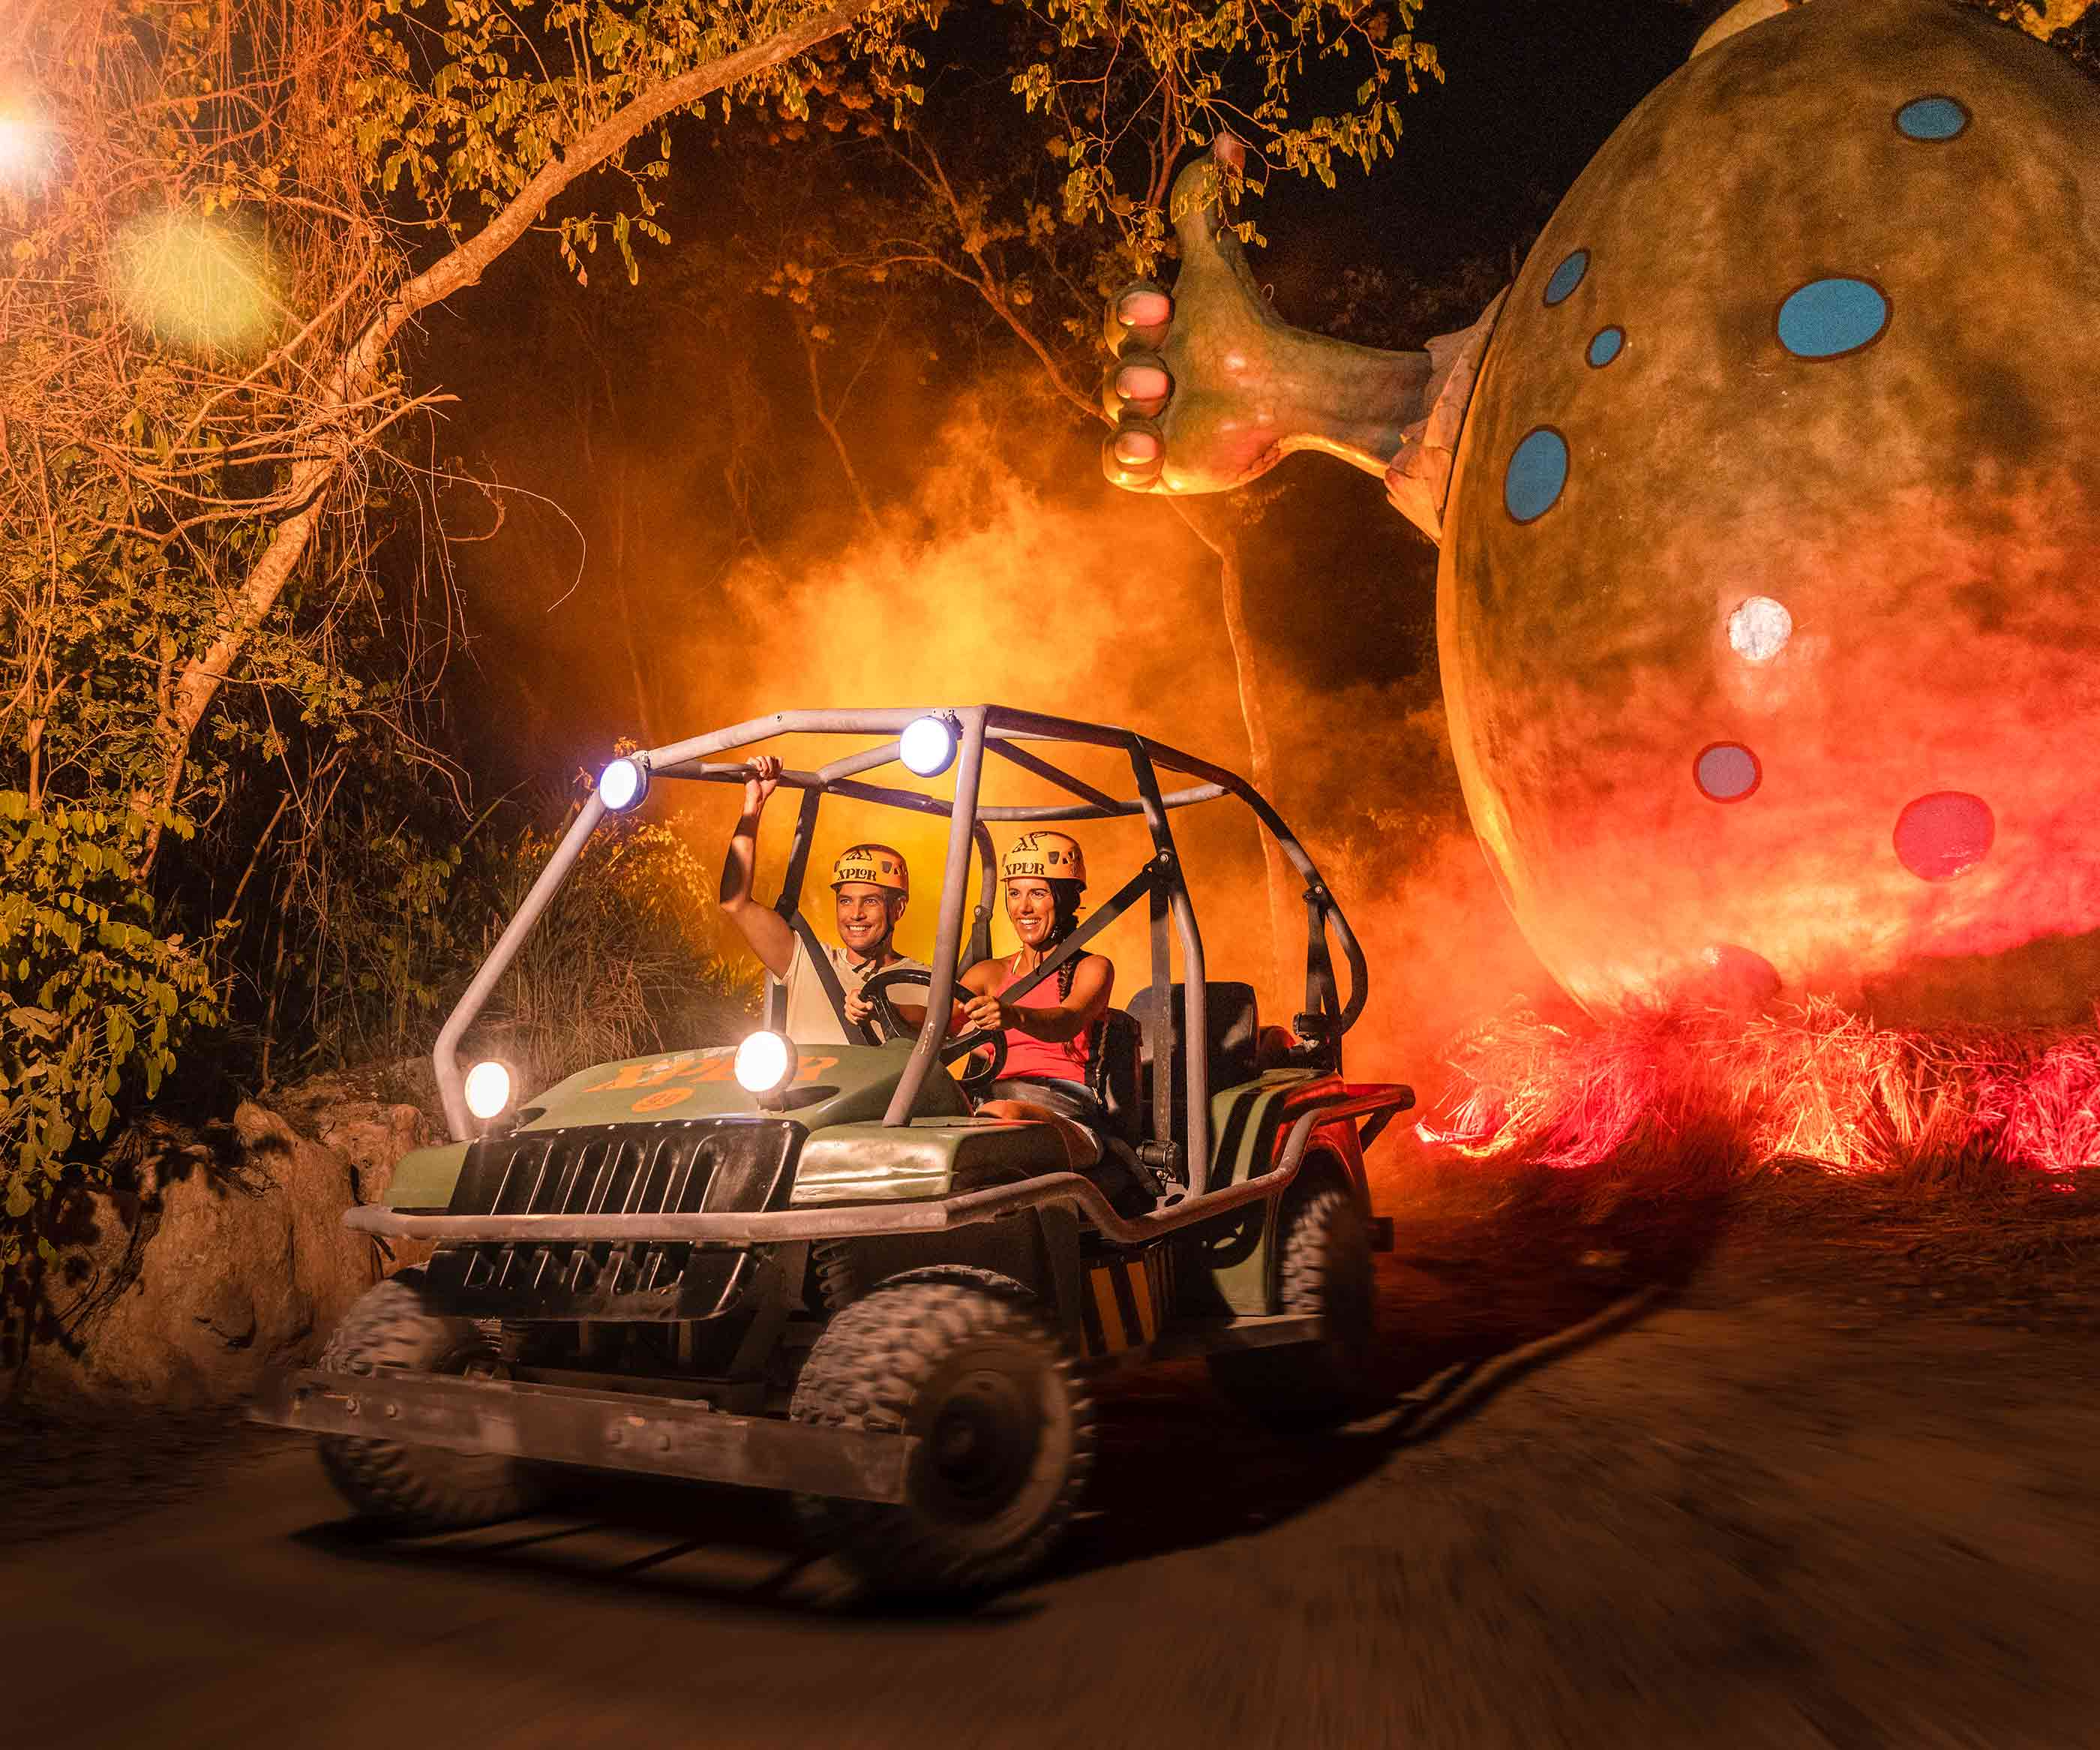 Drive an amphibious vehiche at night and explore the Mayan jungle at the Xplor Fuego park